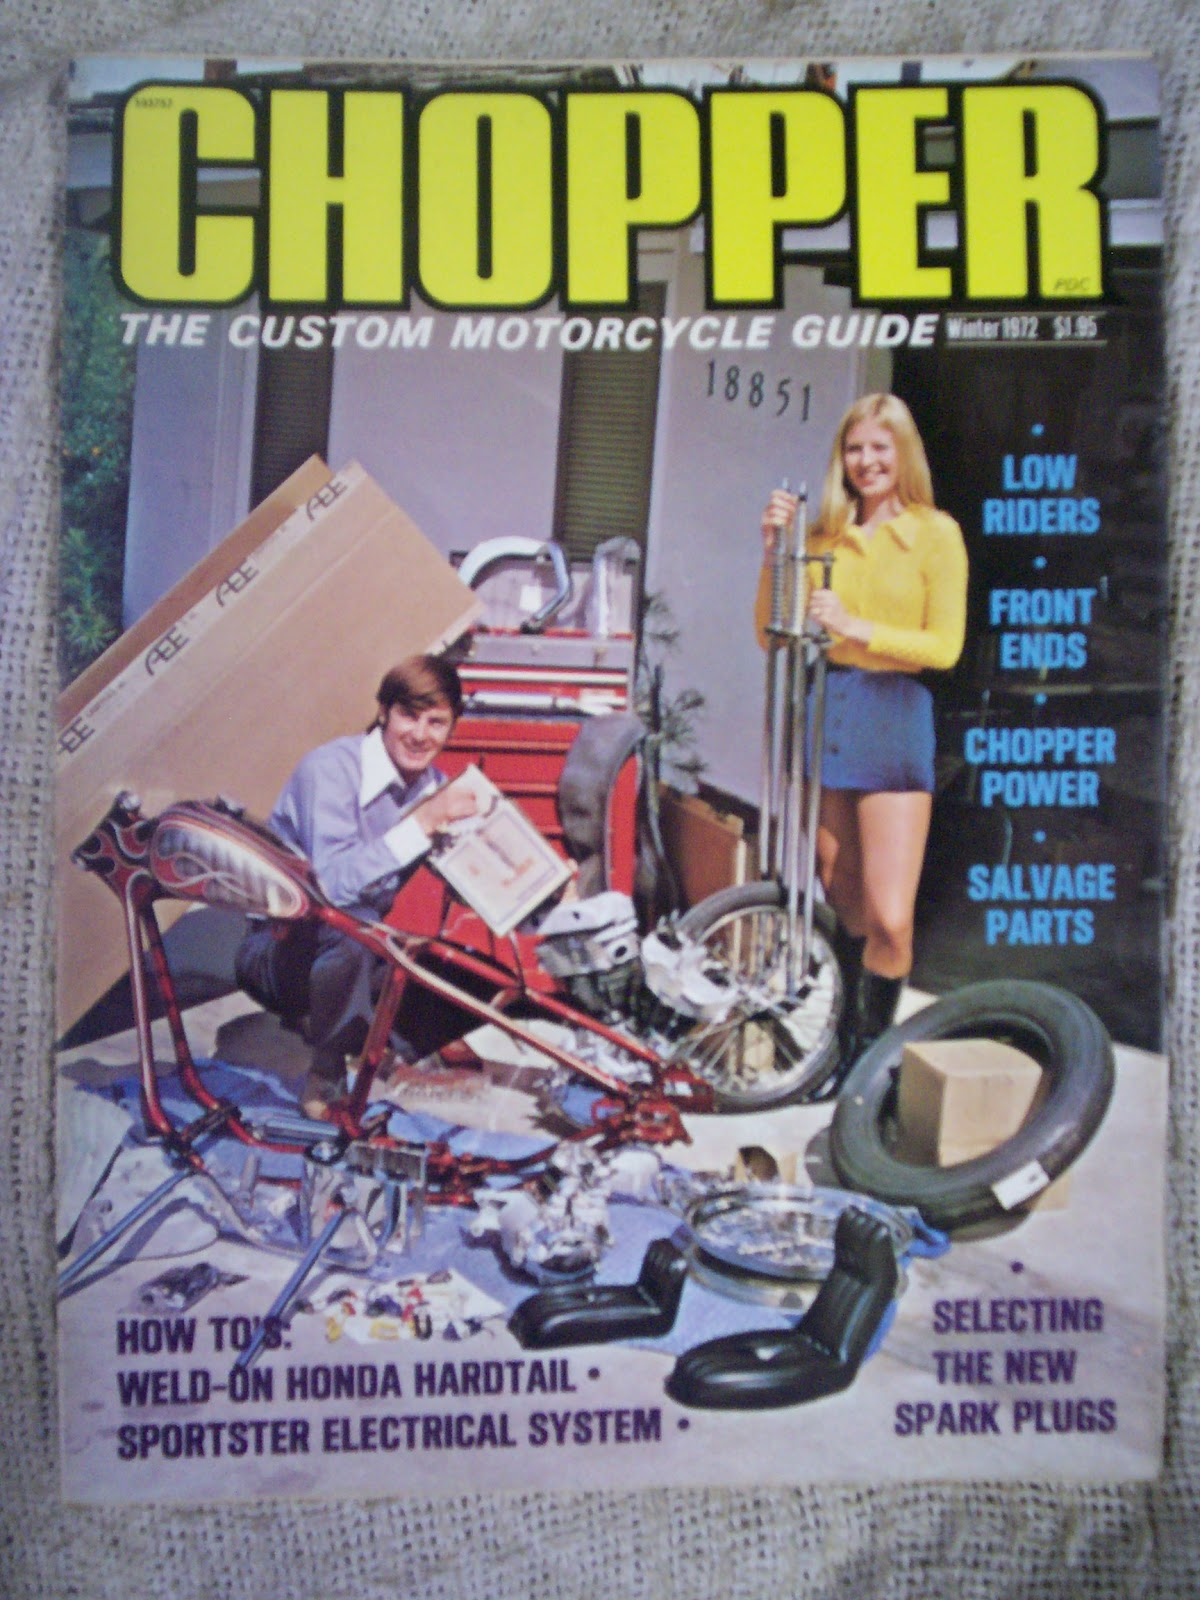 Speedboys: AEE Chopper for street and show cycles